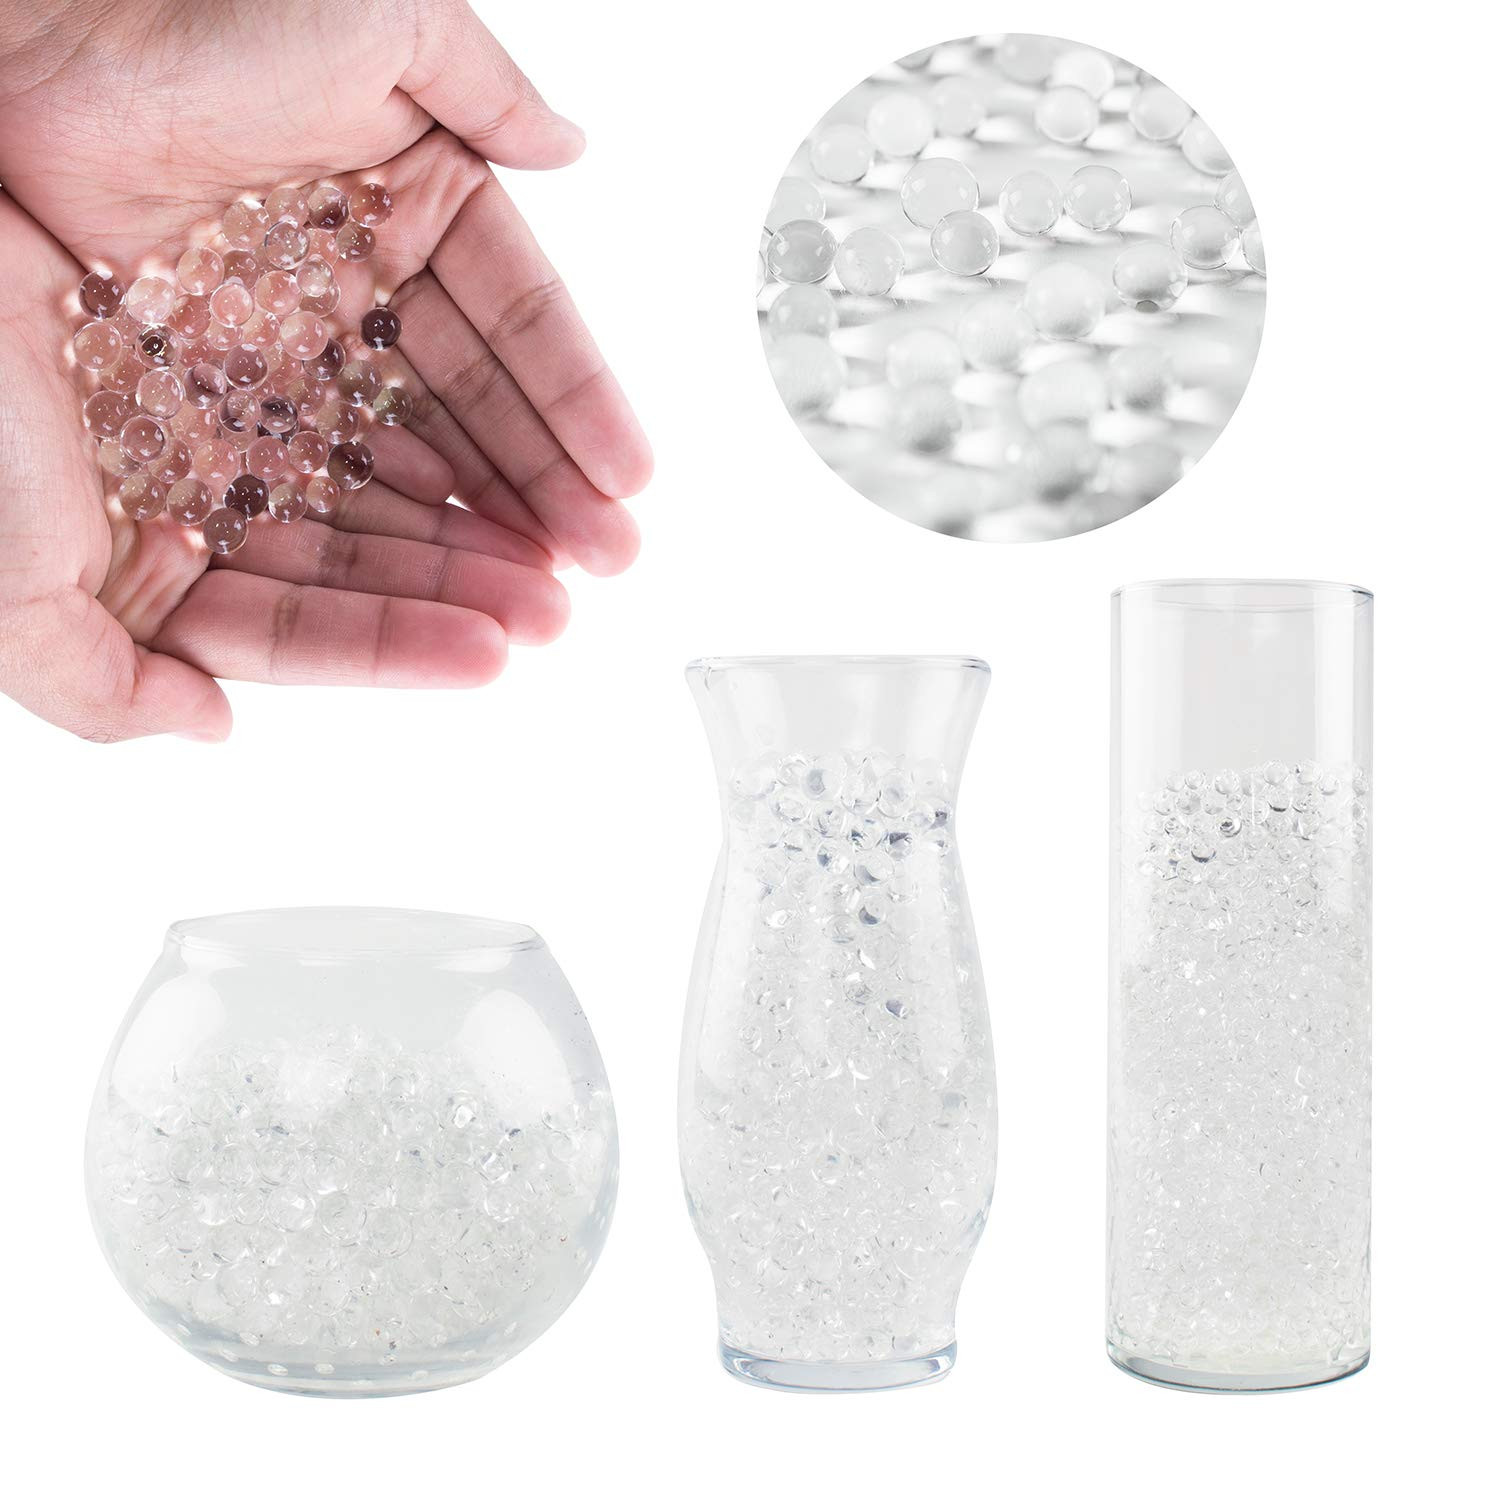 clear crystal vase fillers of best floating pearls for centerpieces amazon com in super z outlet 1 pound bag of clear water gel beads pearls for vase filler candles wedding centerpiece home